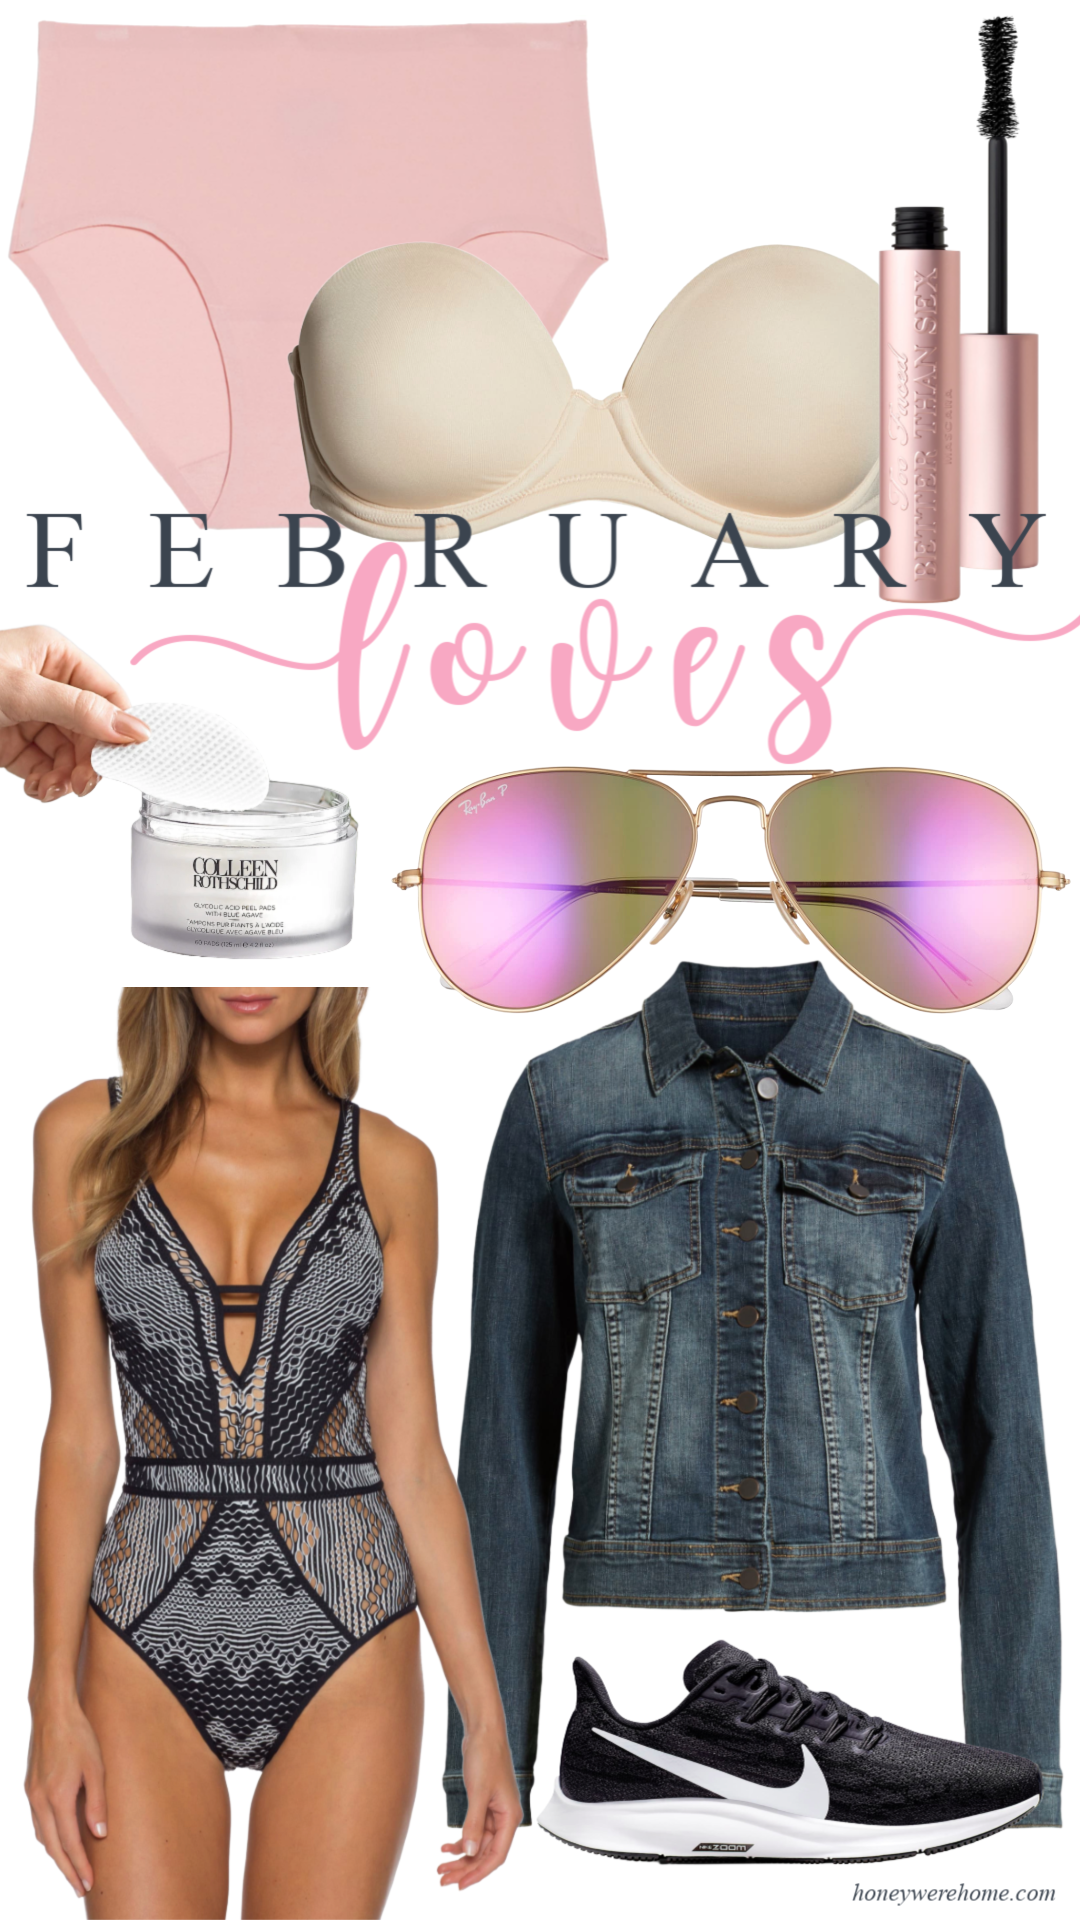 February Loves & I'm Giving Them to You